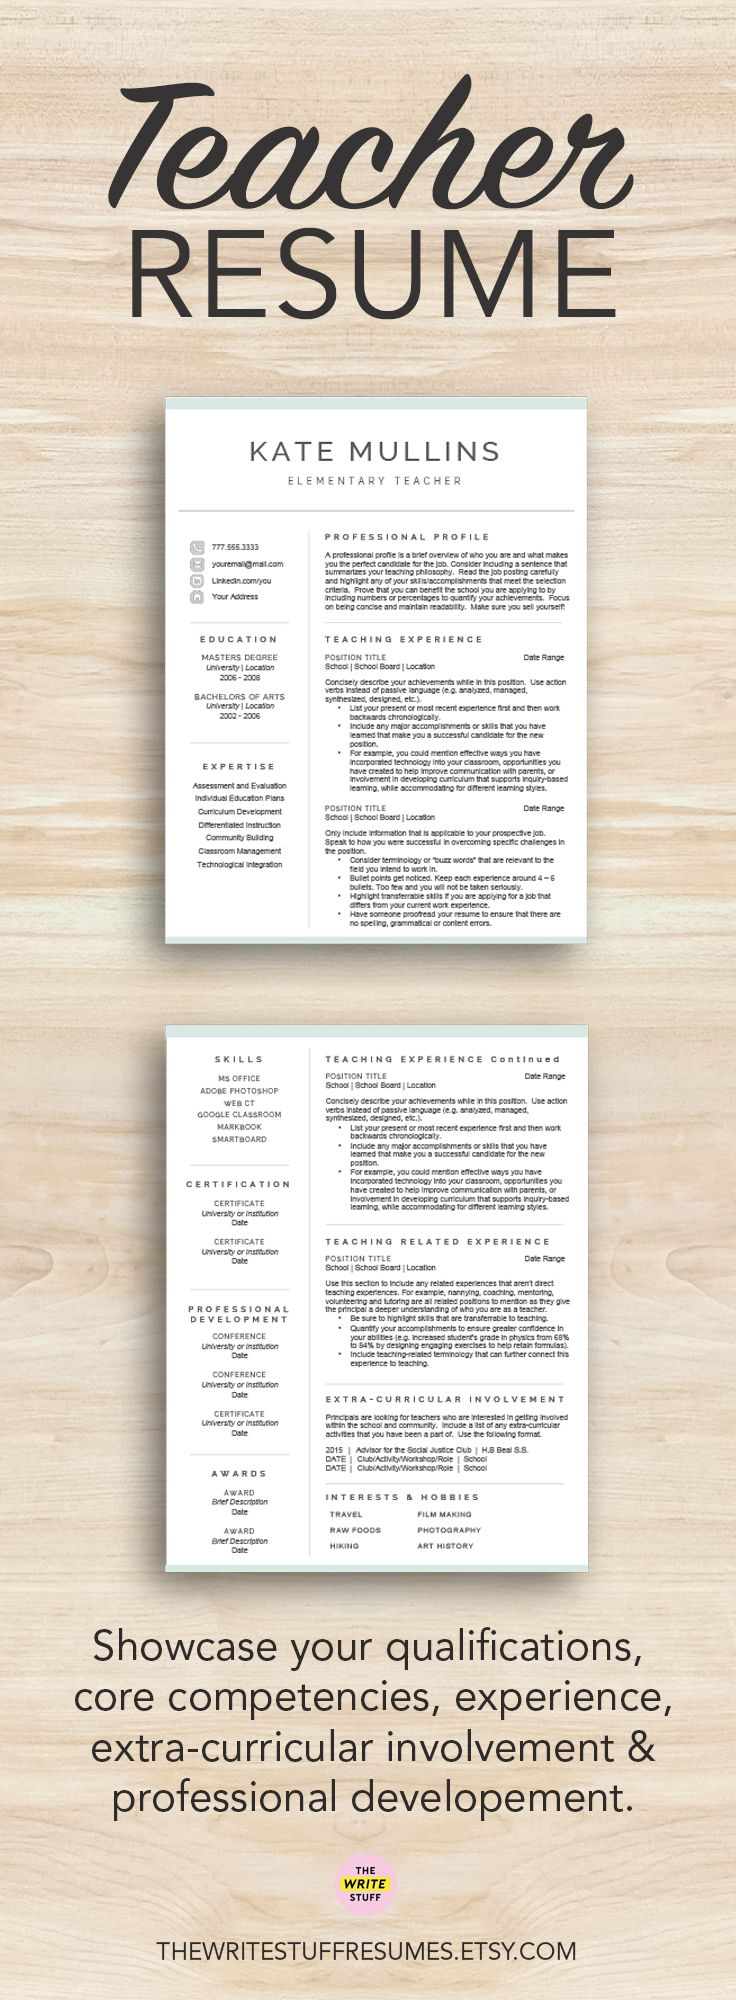 A resume designed for teachers and educators teacher resume educator resume teacher resume tips